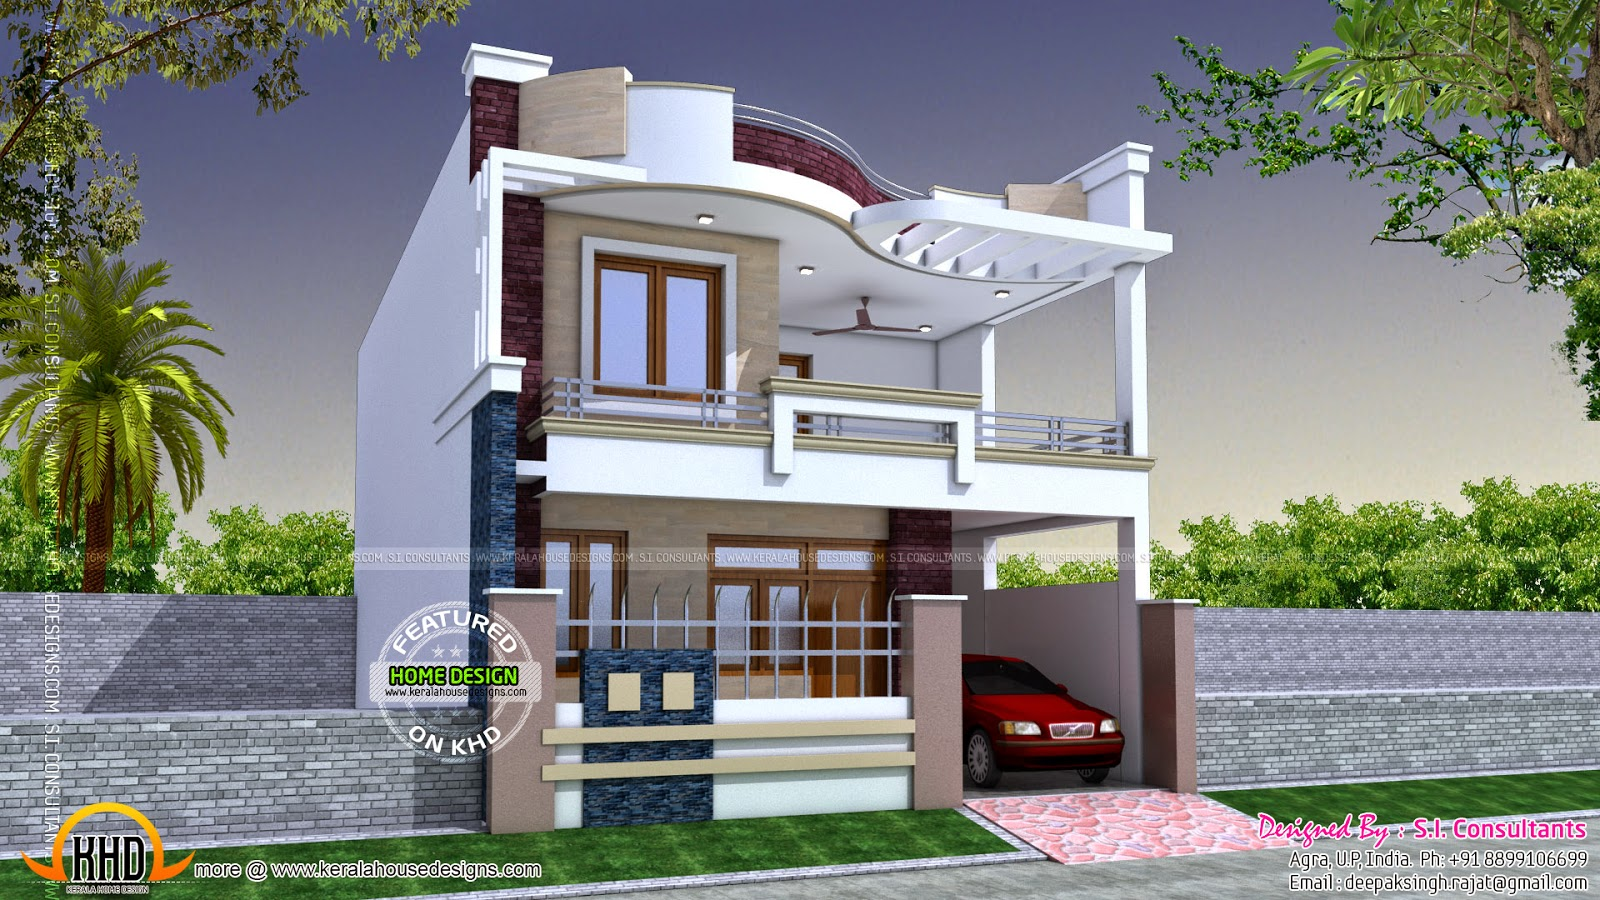 Modern Indian home design - Kerala home design and floor plans